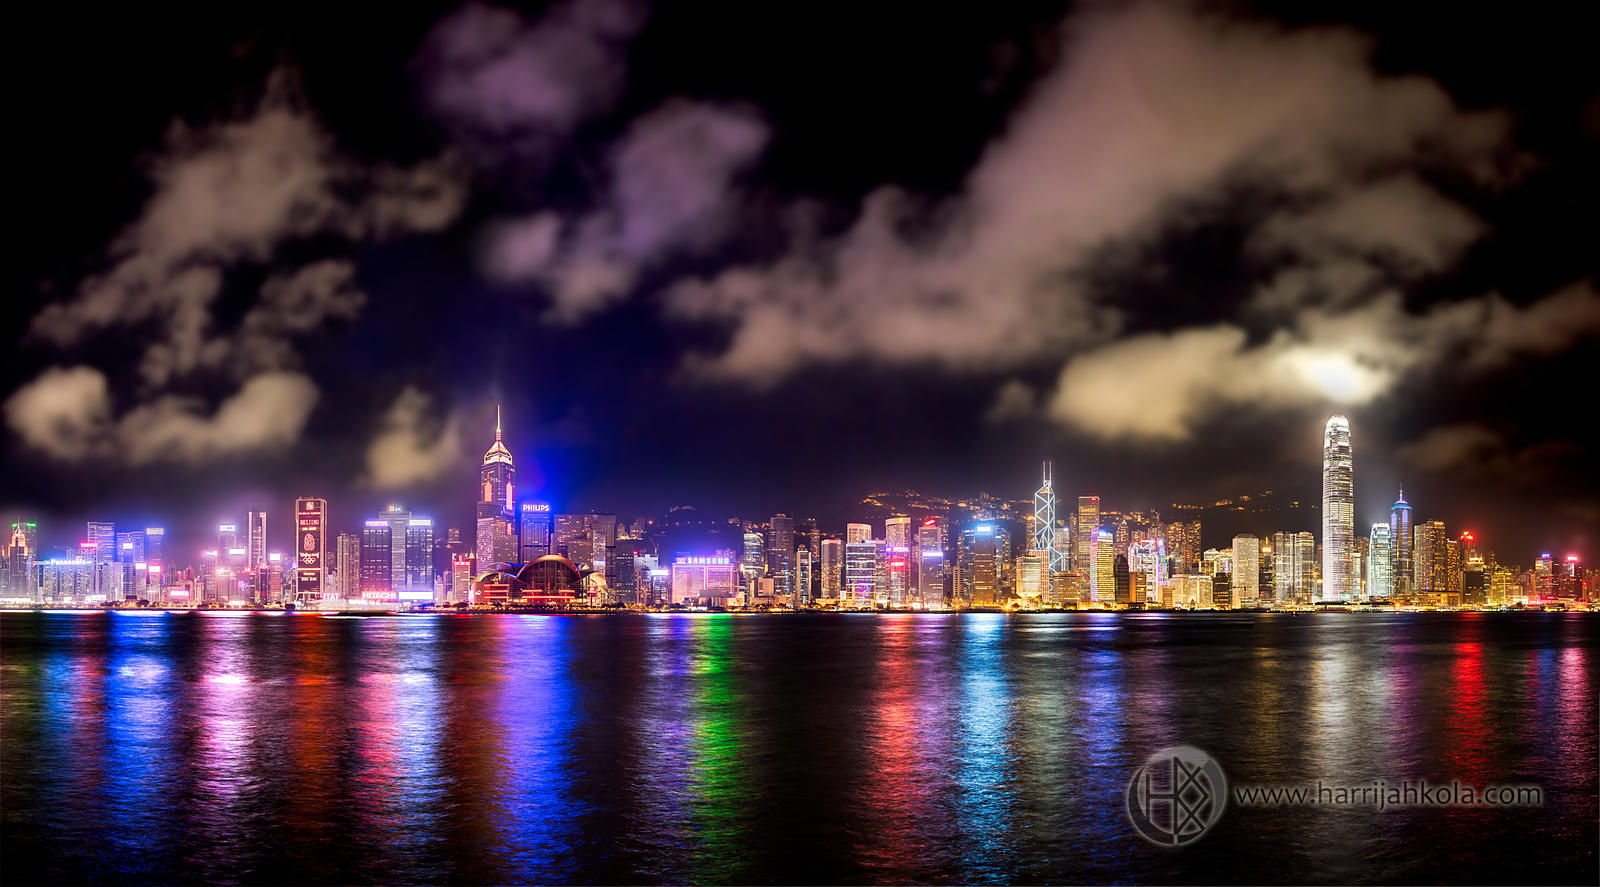 Hong Kong (Cityscape At Night)